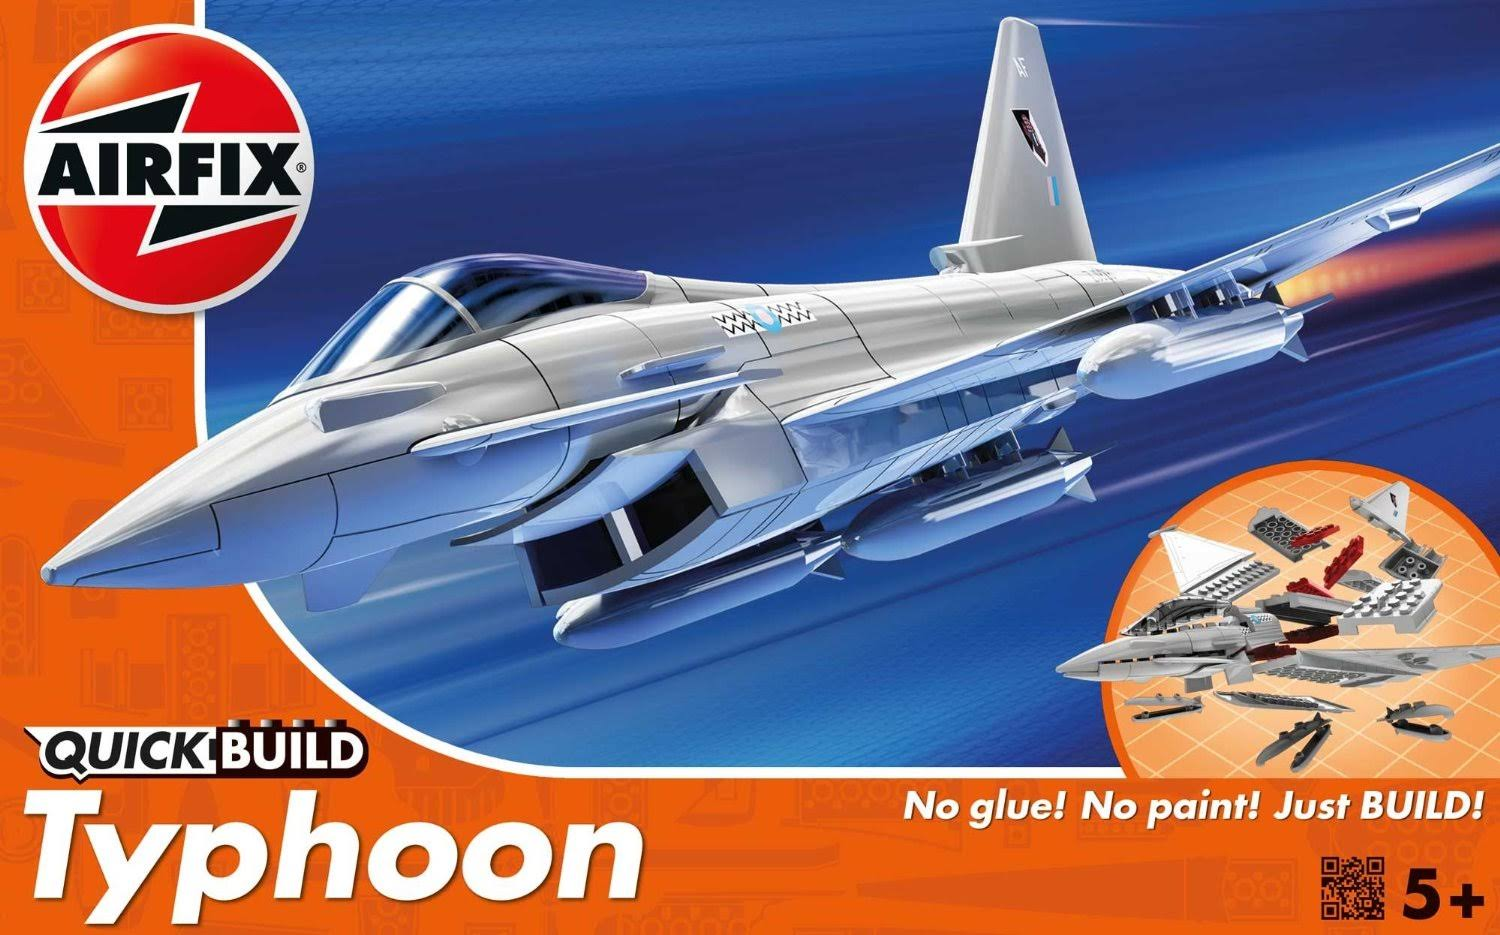 Airfix Quick Build Eurofighter Typhoon Aircraft Model Kit